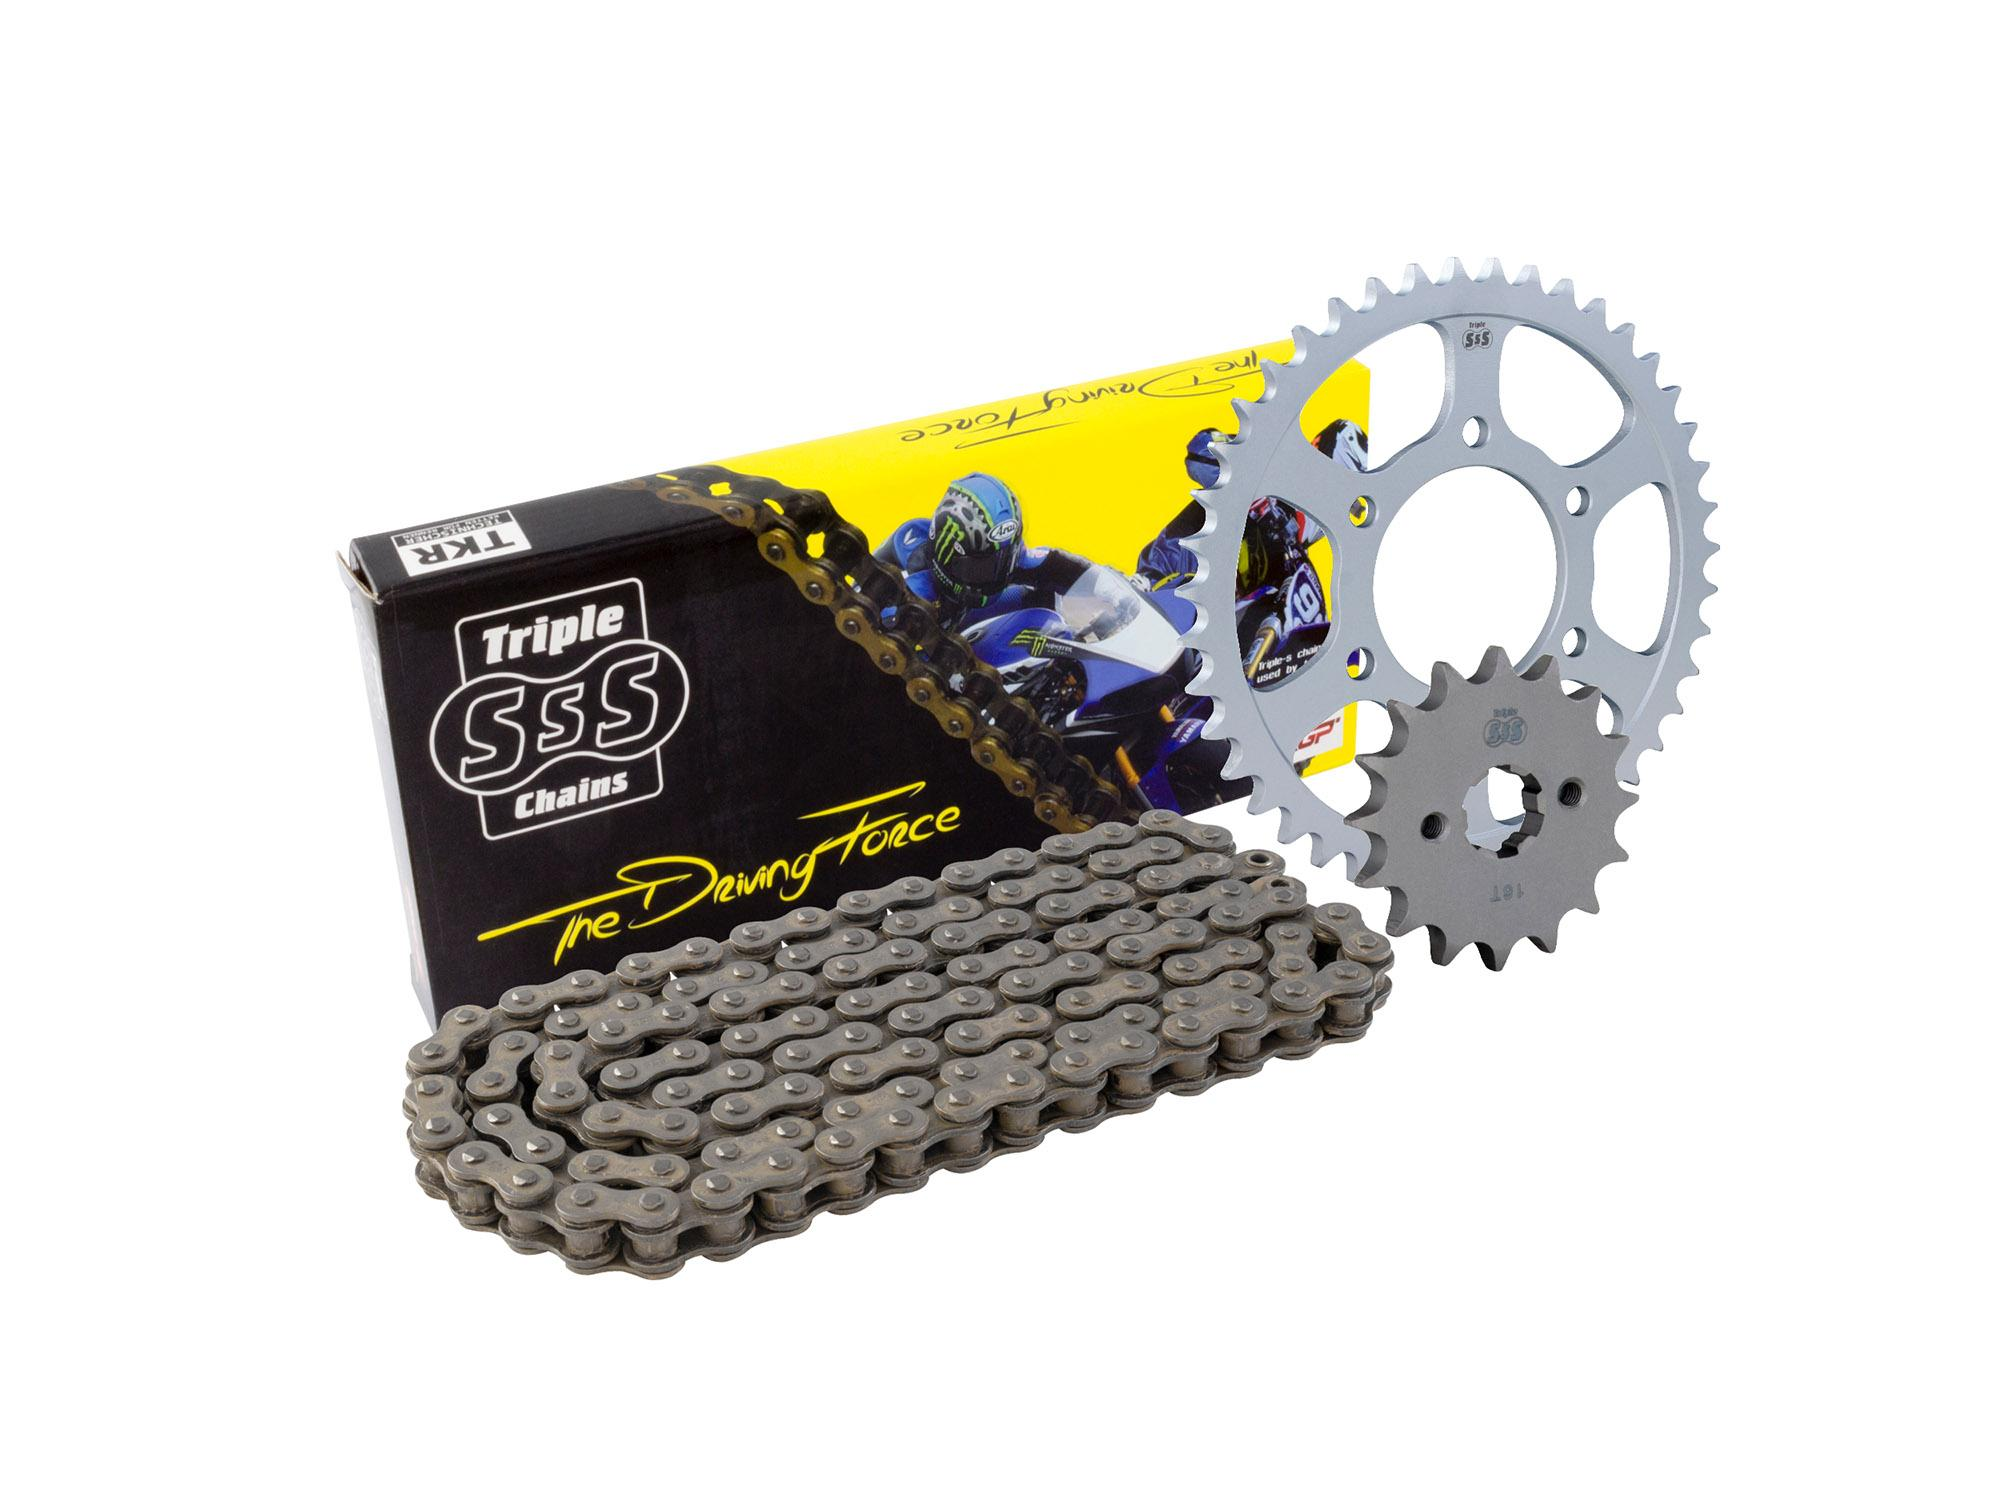 Kawasaki Ninja 300 (EX300) 13-16 Chain & Sprocket Kit: 14T Front, 42T Rear, HD O-Ring Black Chain 520H 106Link